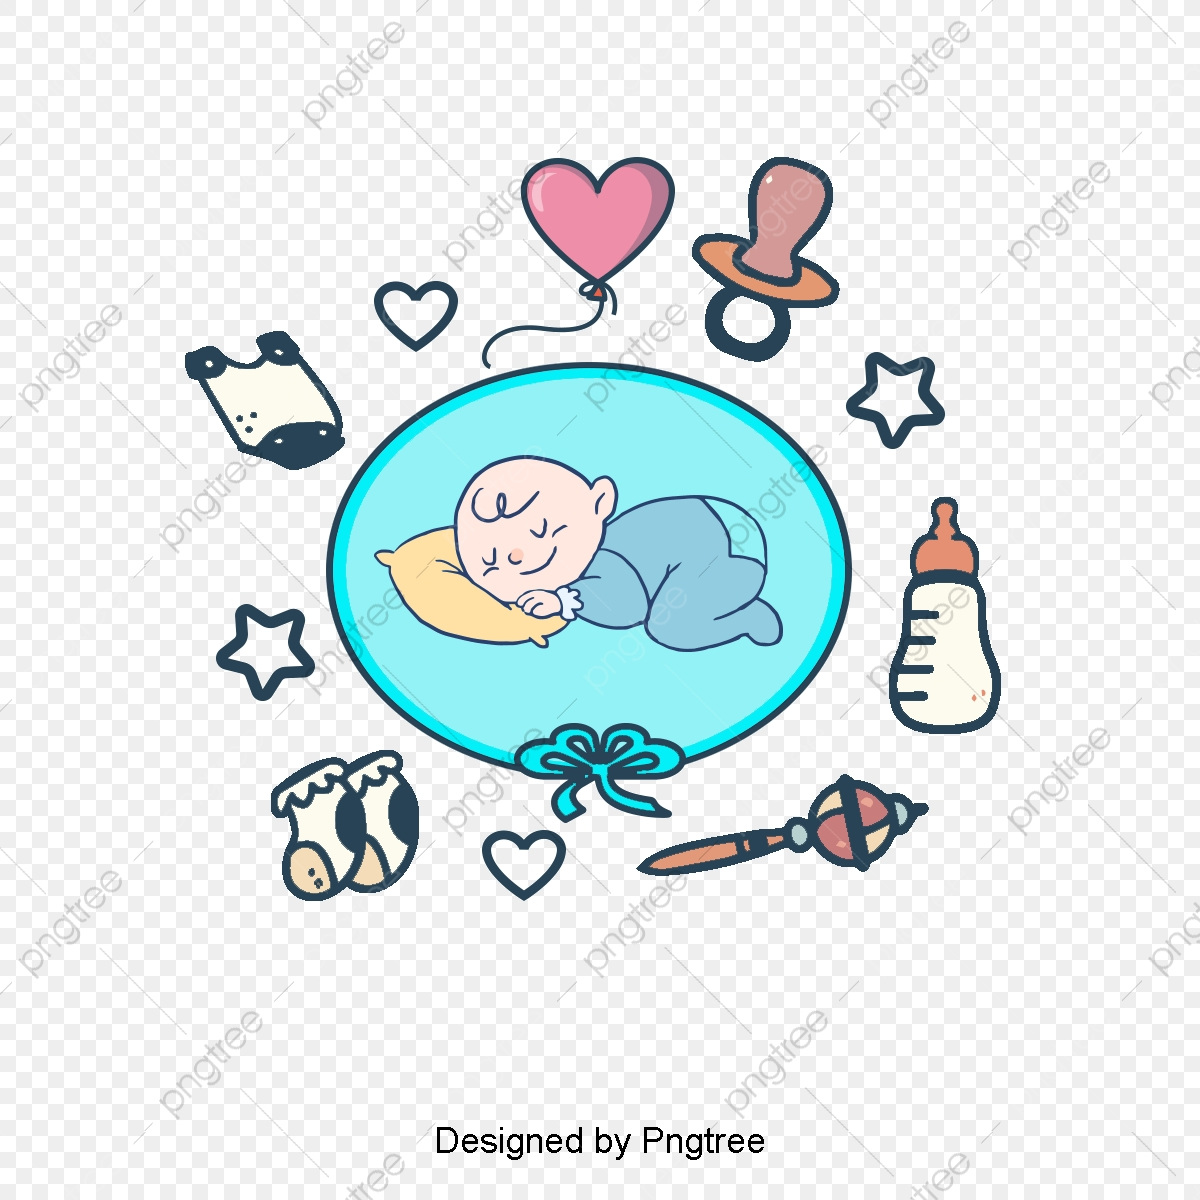 Baby product. Clipart png transparent image